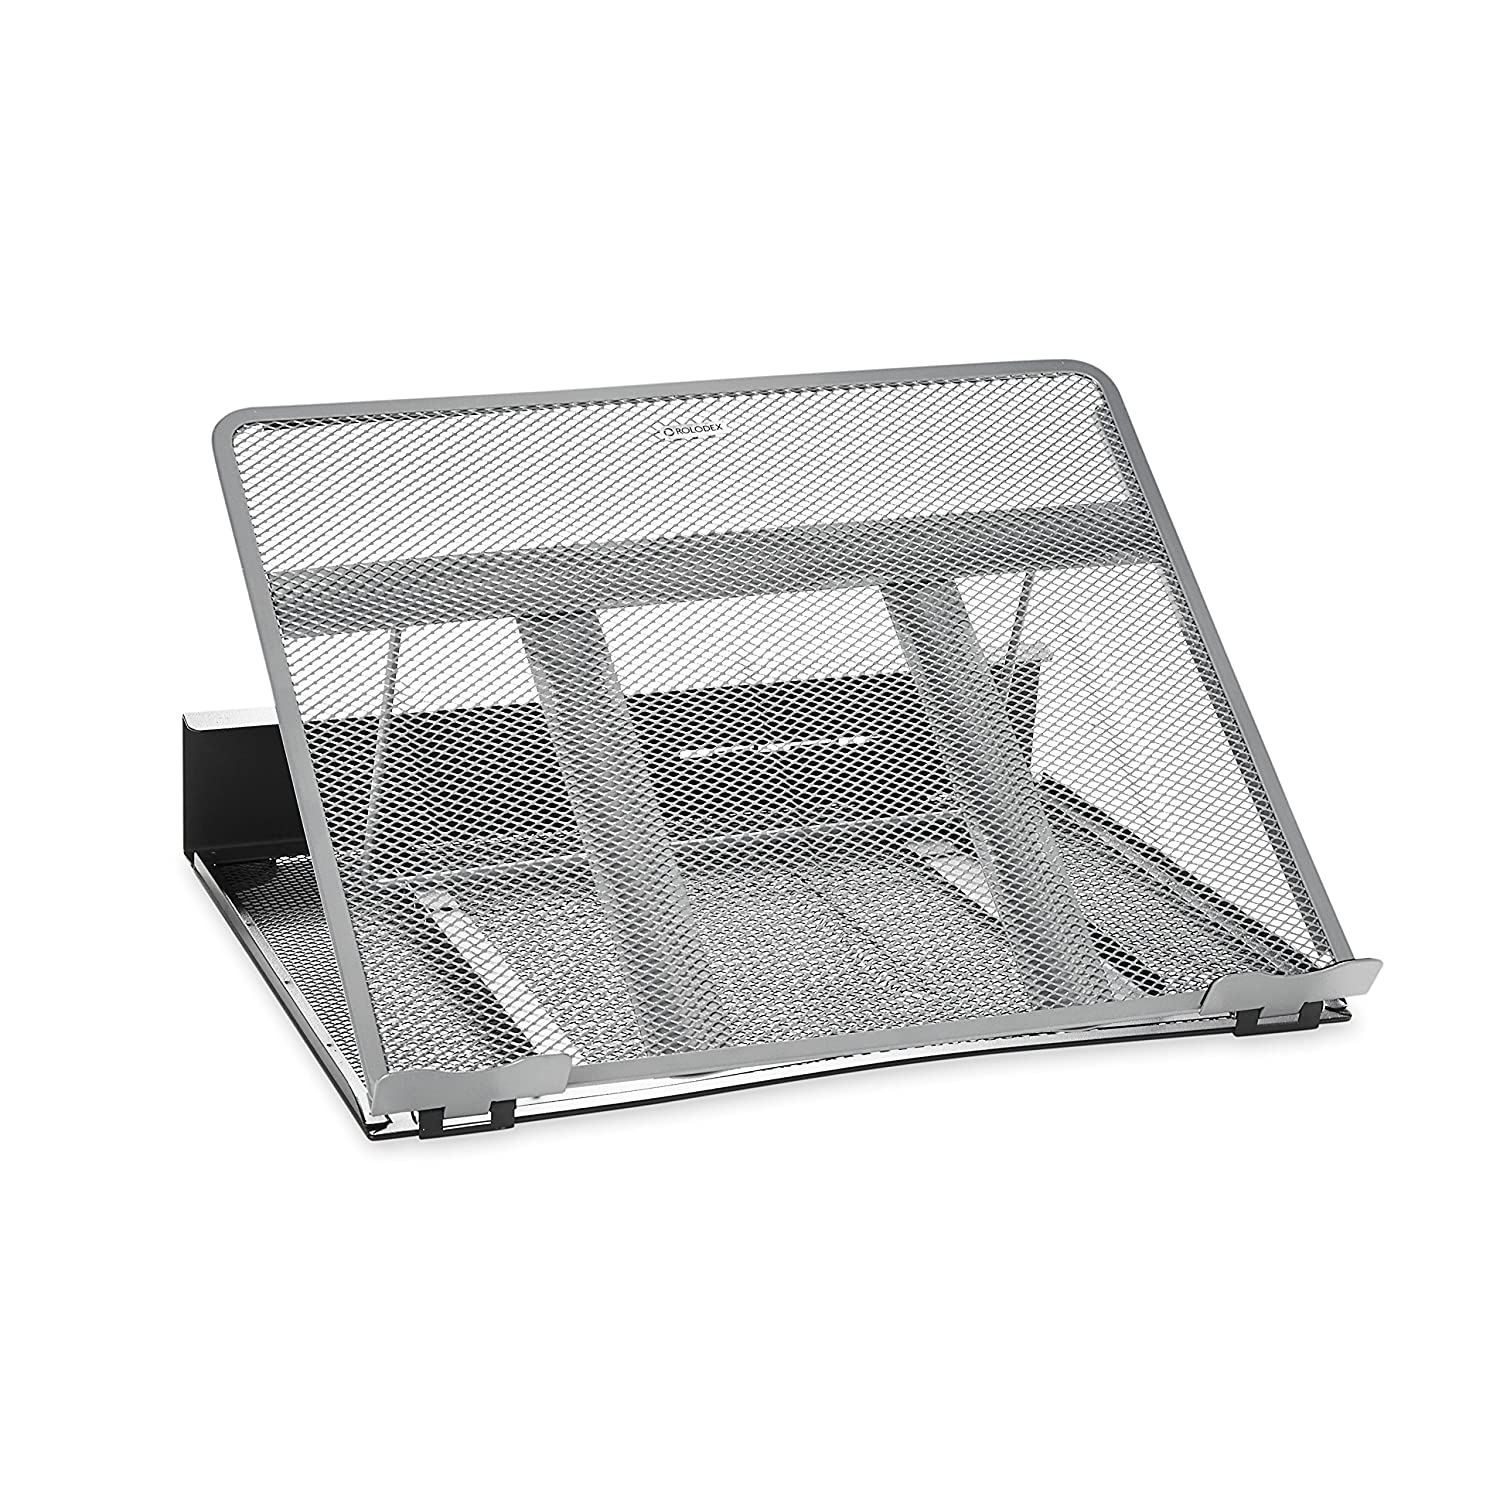 Rolodex Mesh Workspace Laptop Stand, Black/Silver (82410)